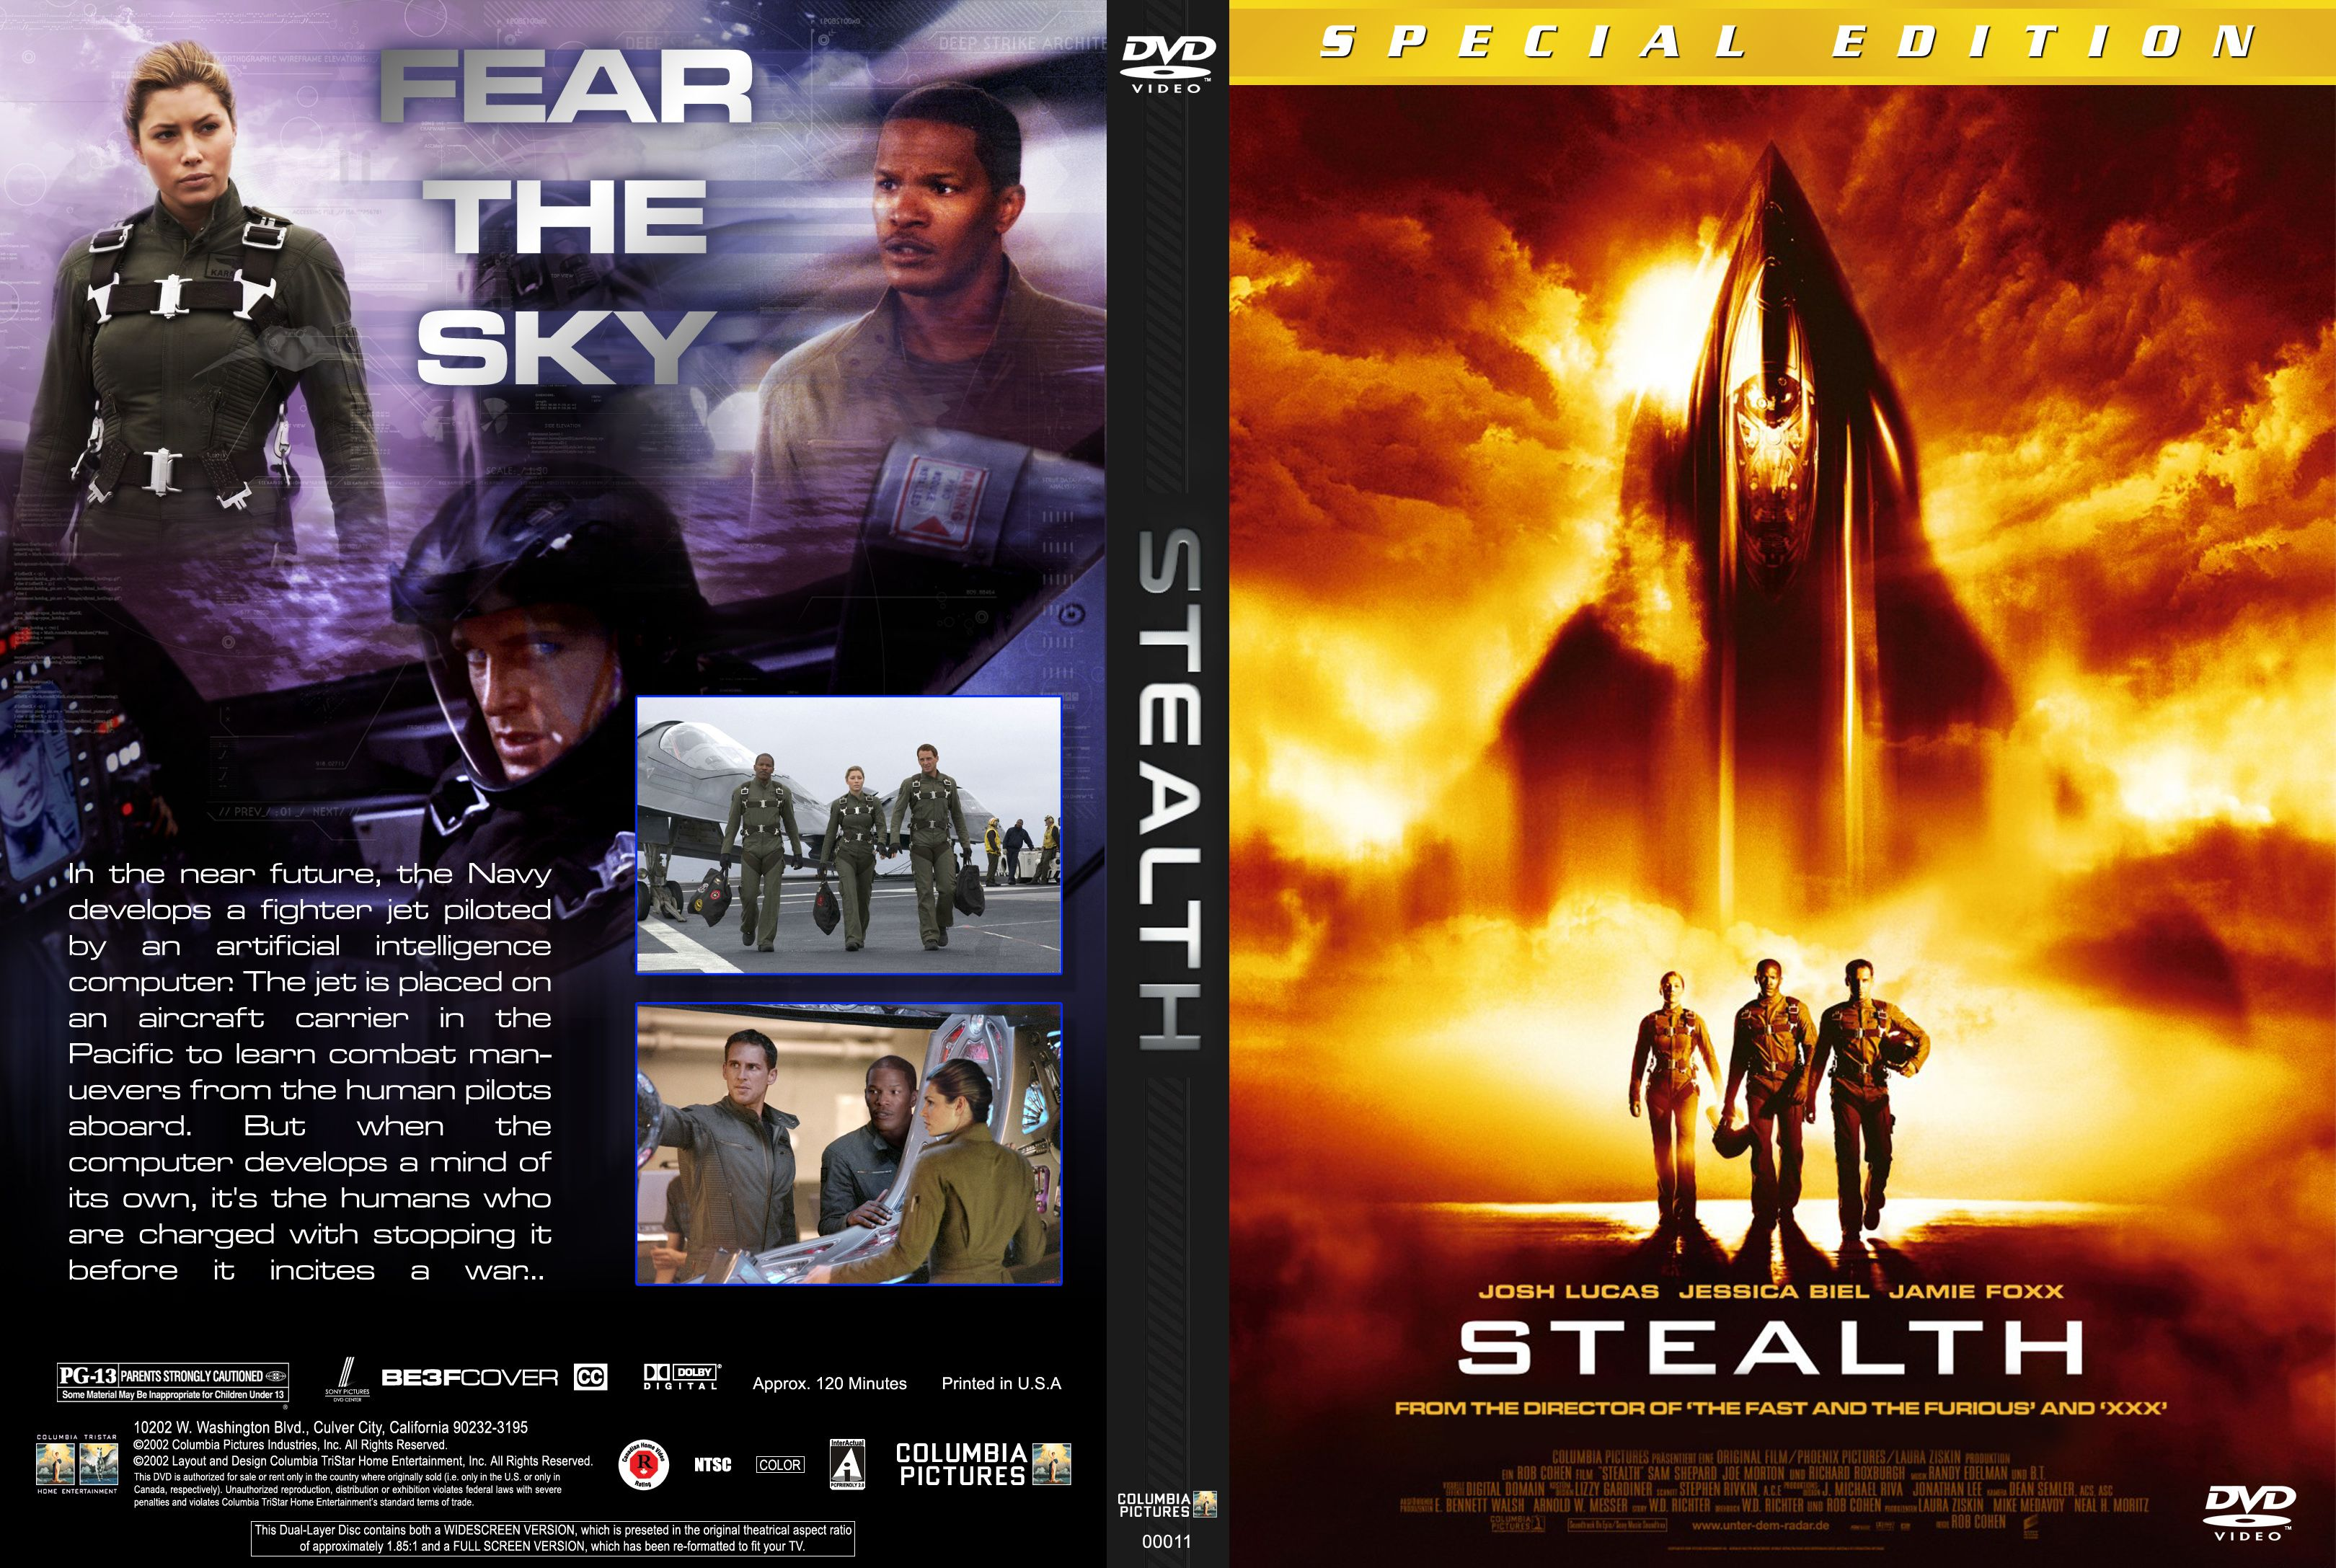 stealth | DVD covers and movie posters | Pinterest